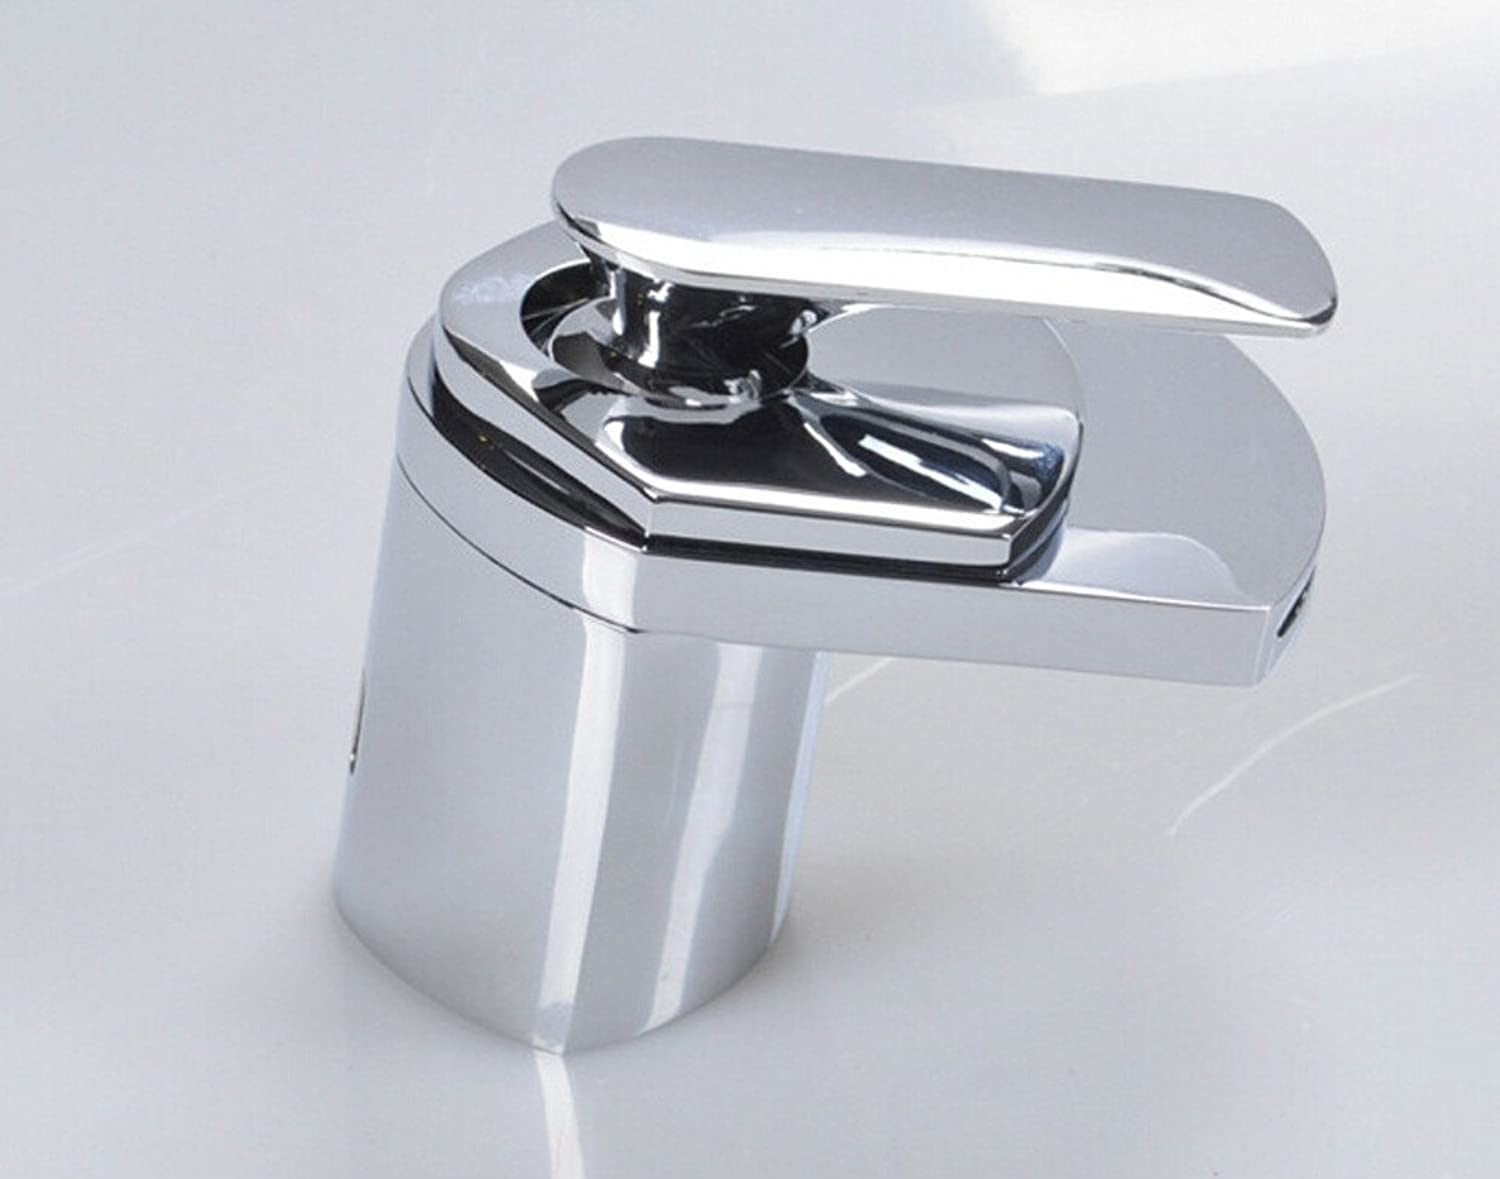 Hlluya Professional Sink Mixer Tap Kitchen Faucet The waterfall faucet basin mixer corrosion-resistant glass Faucet